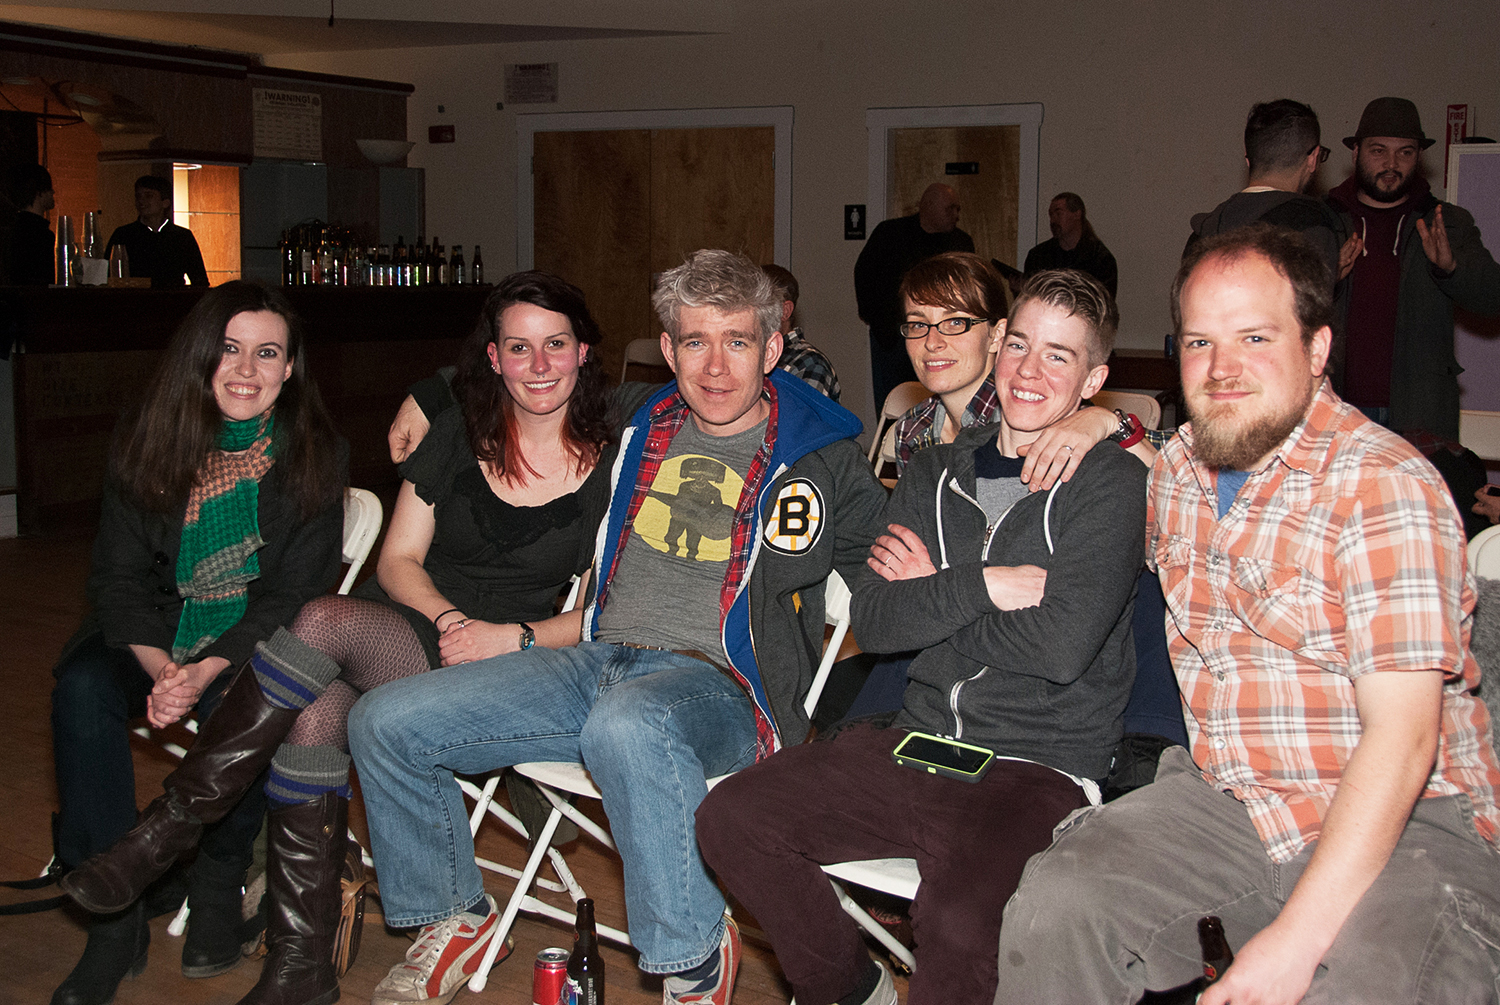 Filmmakers_01_March2015_BostonIndieMafia_LightFiltersStudio.jpg